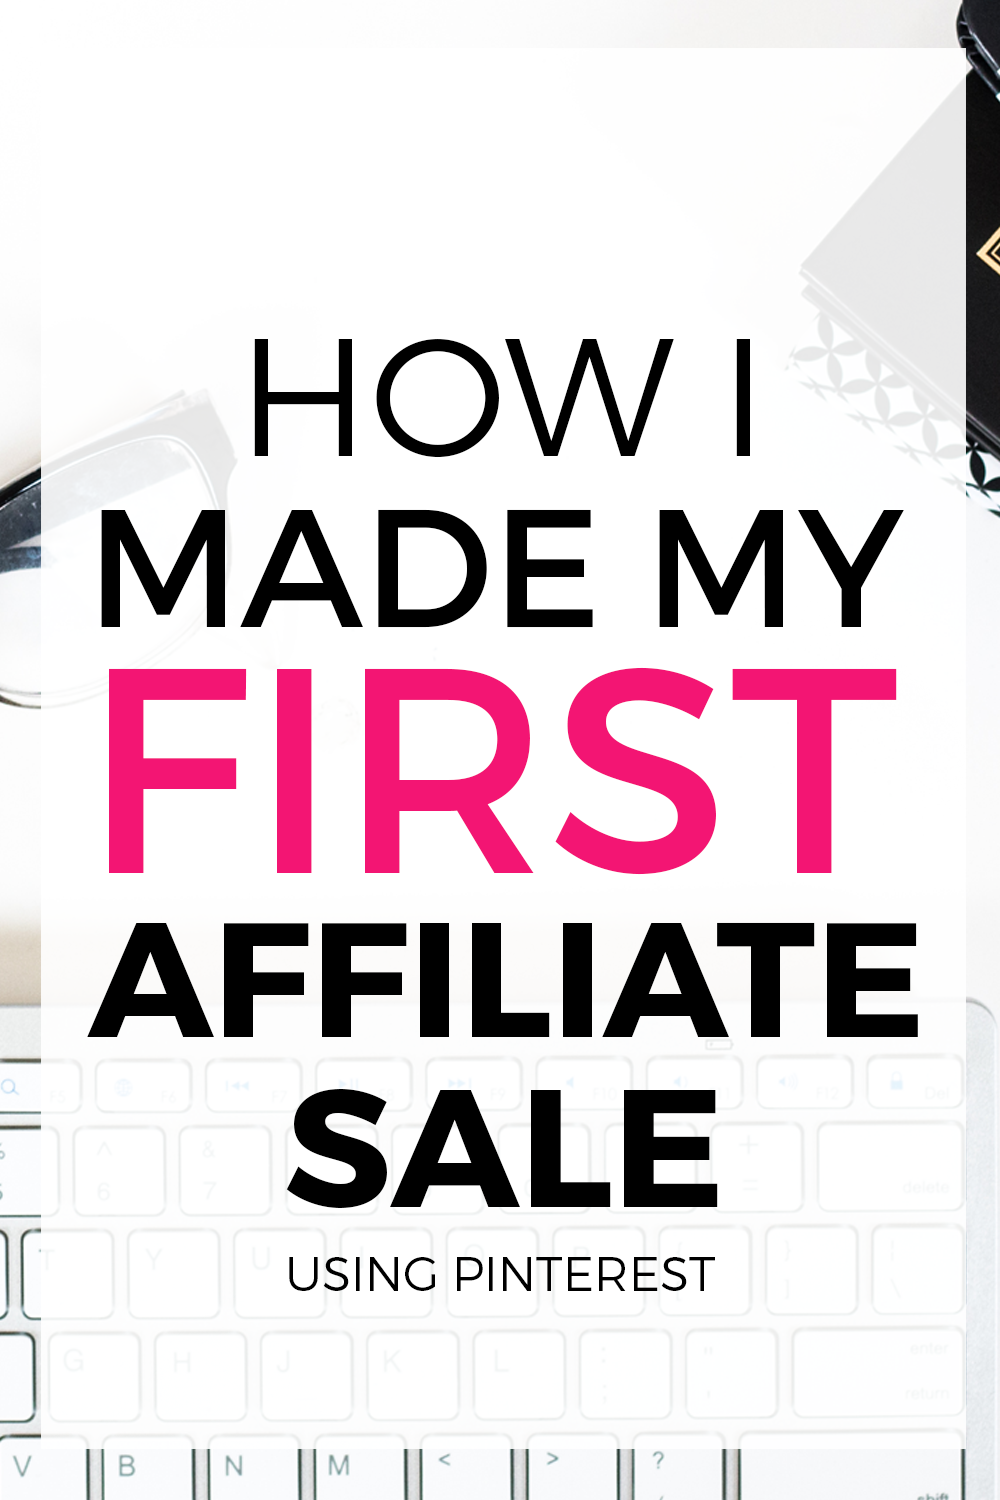 How I Made My First Affiliate Sale On Pinterest |